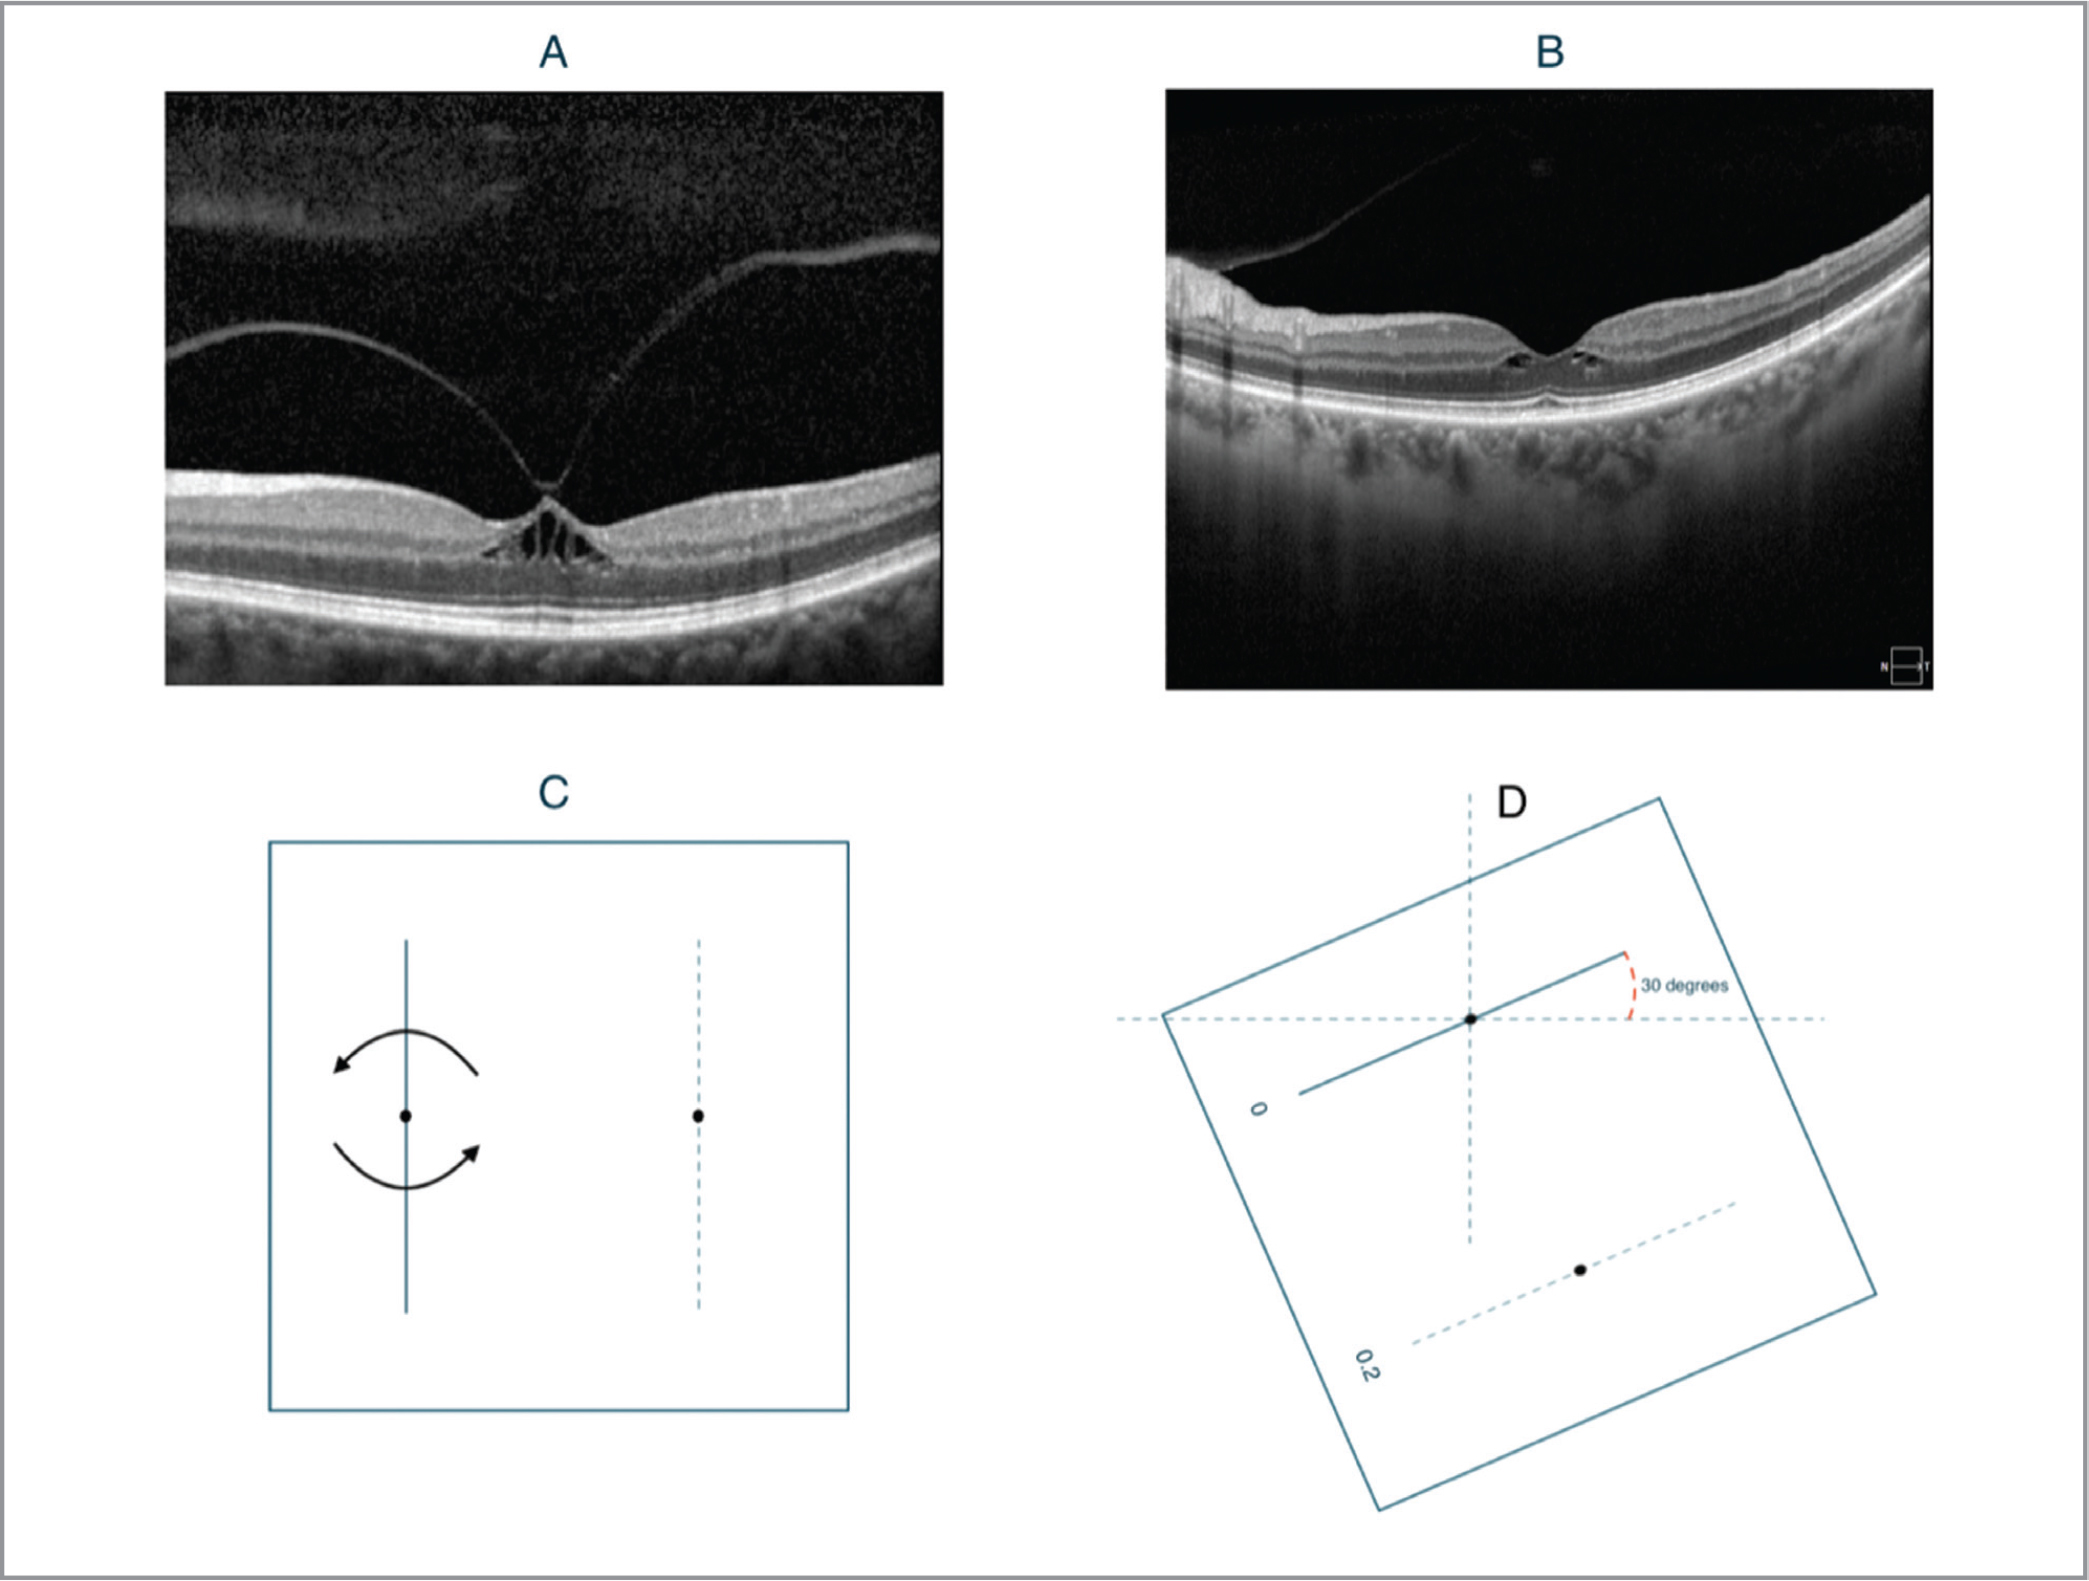 (A) Spectral-domain optical coherence tomography (SD-OCT) of the patient's left eye at her initial visit demonstrating focal vitreomacular traction with cystoid foveal edema. Only horizontal slices were obtained at the time of image capture, so this image represents a horizontal slice through the fovea. (B) SD-OCT of the patient's left eye taken in at her follow-up visit demonstrating interval release of traction, yet persistent parafoveal fluid cysts. The contour of her central fovea has almost fully returned to a physiologic position. This image represents a cross-sectional slice oriented 30° above the horizontal axis, along approximately the same plane as that of the M-CHARTS testing booklet at which the patient saw maximal distortion. (C) Schematic diagram demonstrating the axis of rotation of the M-CHARTS testing booklet about an axis perpendicular to the center of the page, emanating from the central fixation point. The solid vertical line represents the index test figure for detection of metamorphopsia. Our patient noted no metamorphopsia when presented, as recommended, with both a vertical a horizontal testing target separately. (D) After presenting the patient with a variety of M-CHARTS testing target orientations over 360°, maximal distortion was reported by our patient at a meridian located 30° above the X axis.